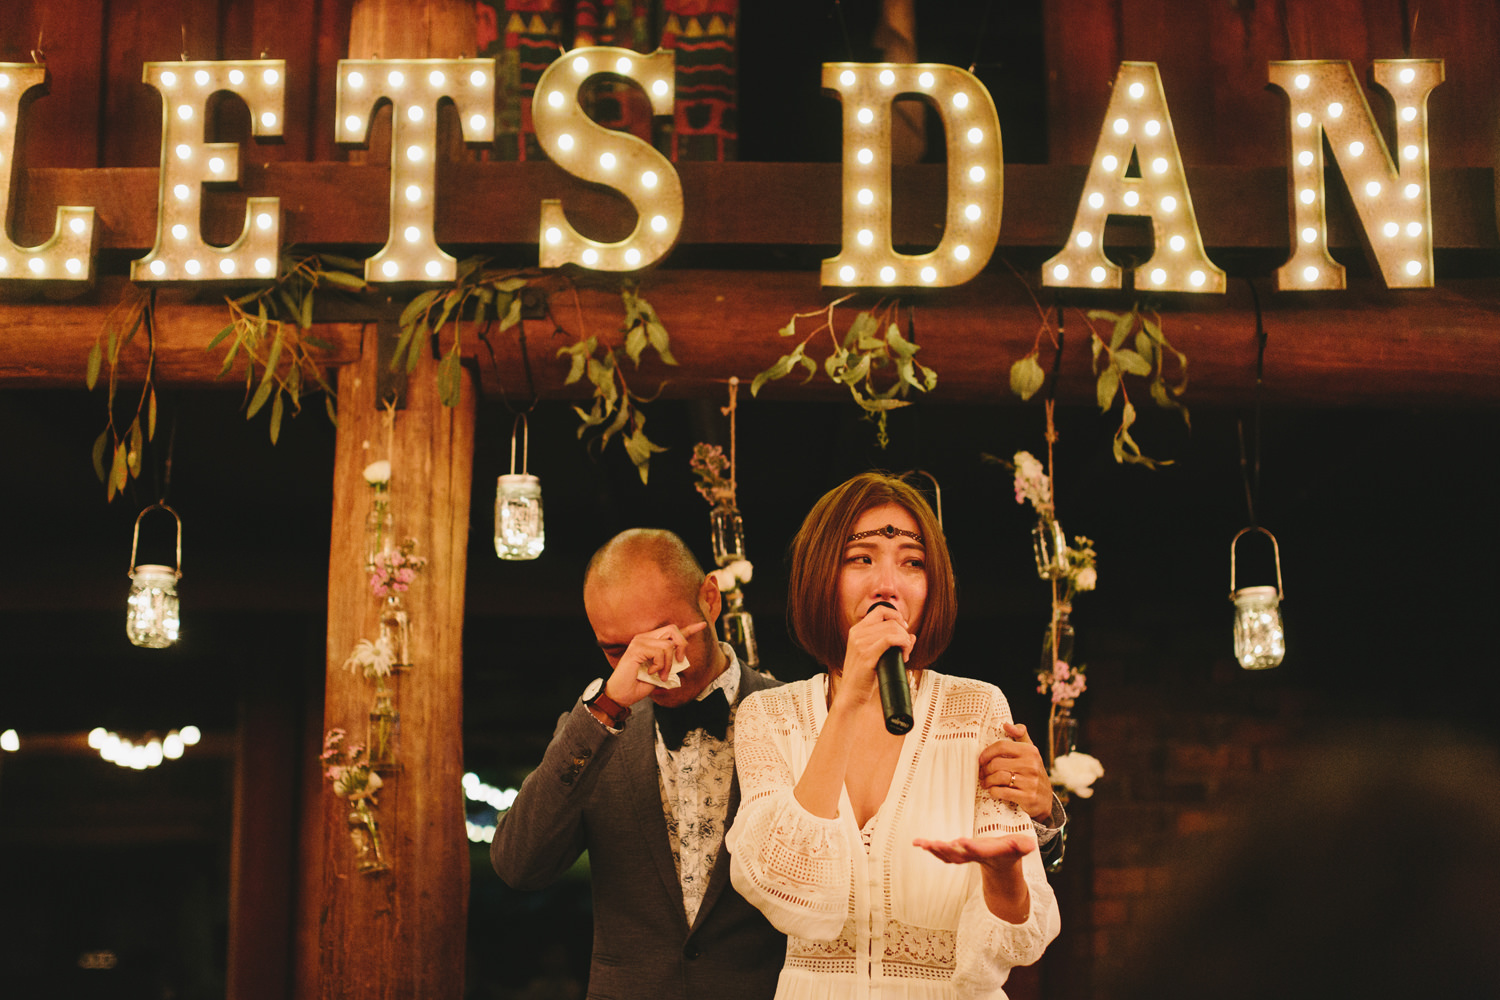 213-Barn_Wedding_Australia_Sam_Ting.jpg